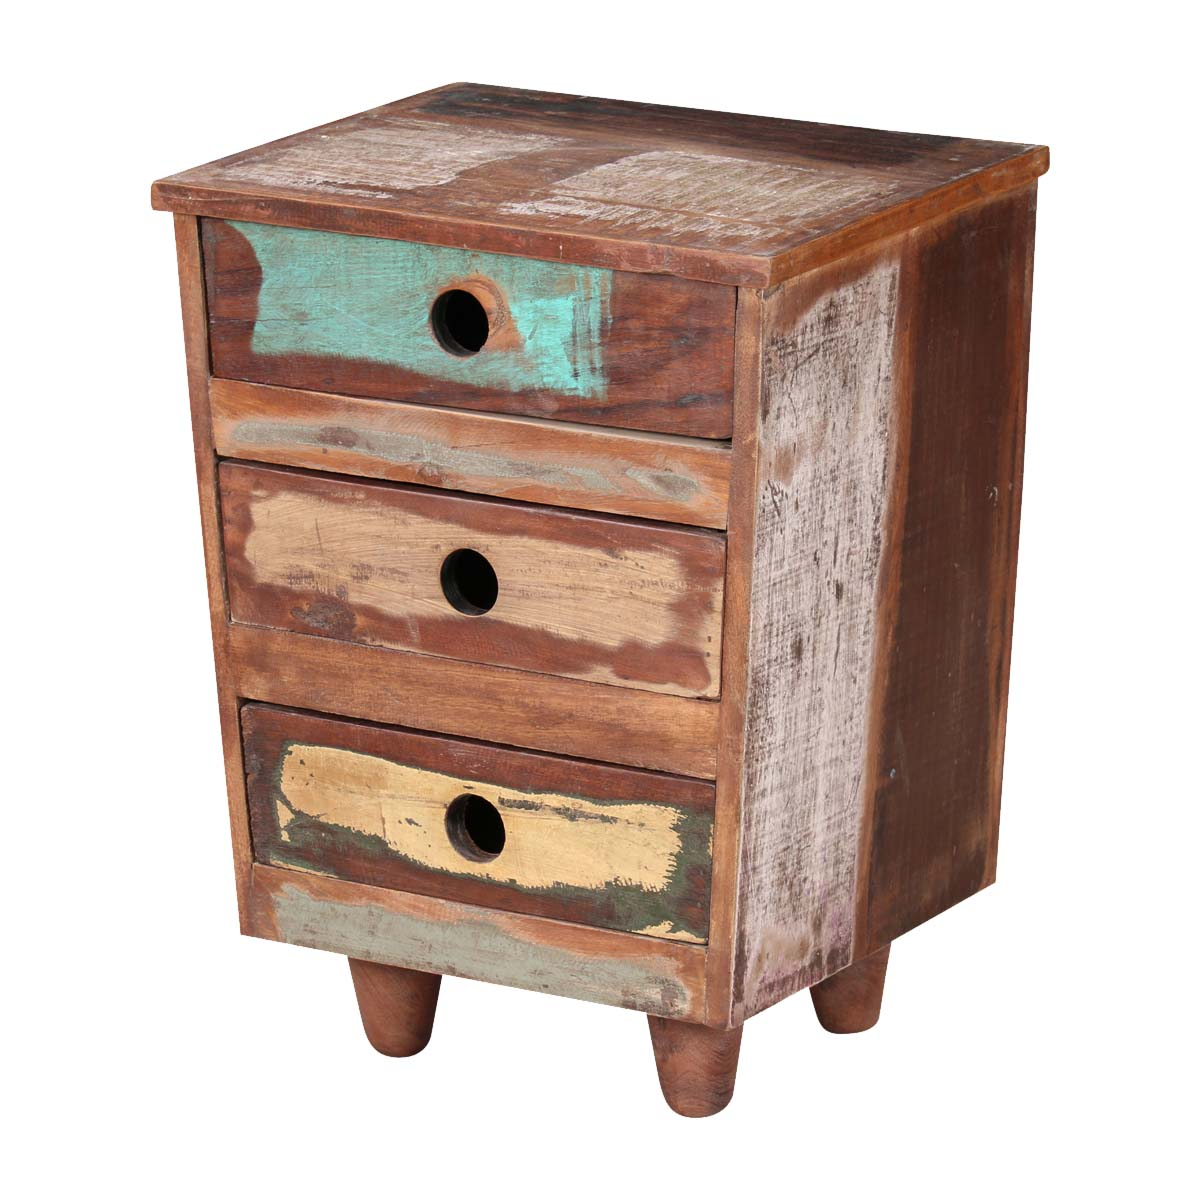 pine hurst cherry accent tables with drawer coffee table wicker sedona three reclaimed wood rustic end elkton wedge distressed side best paint color for brown leather furniture